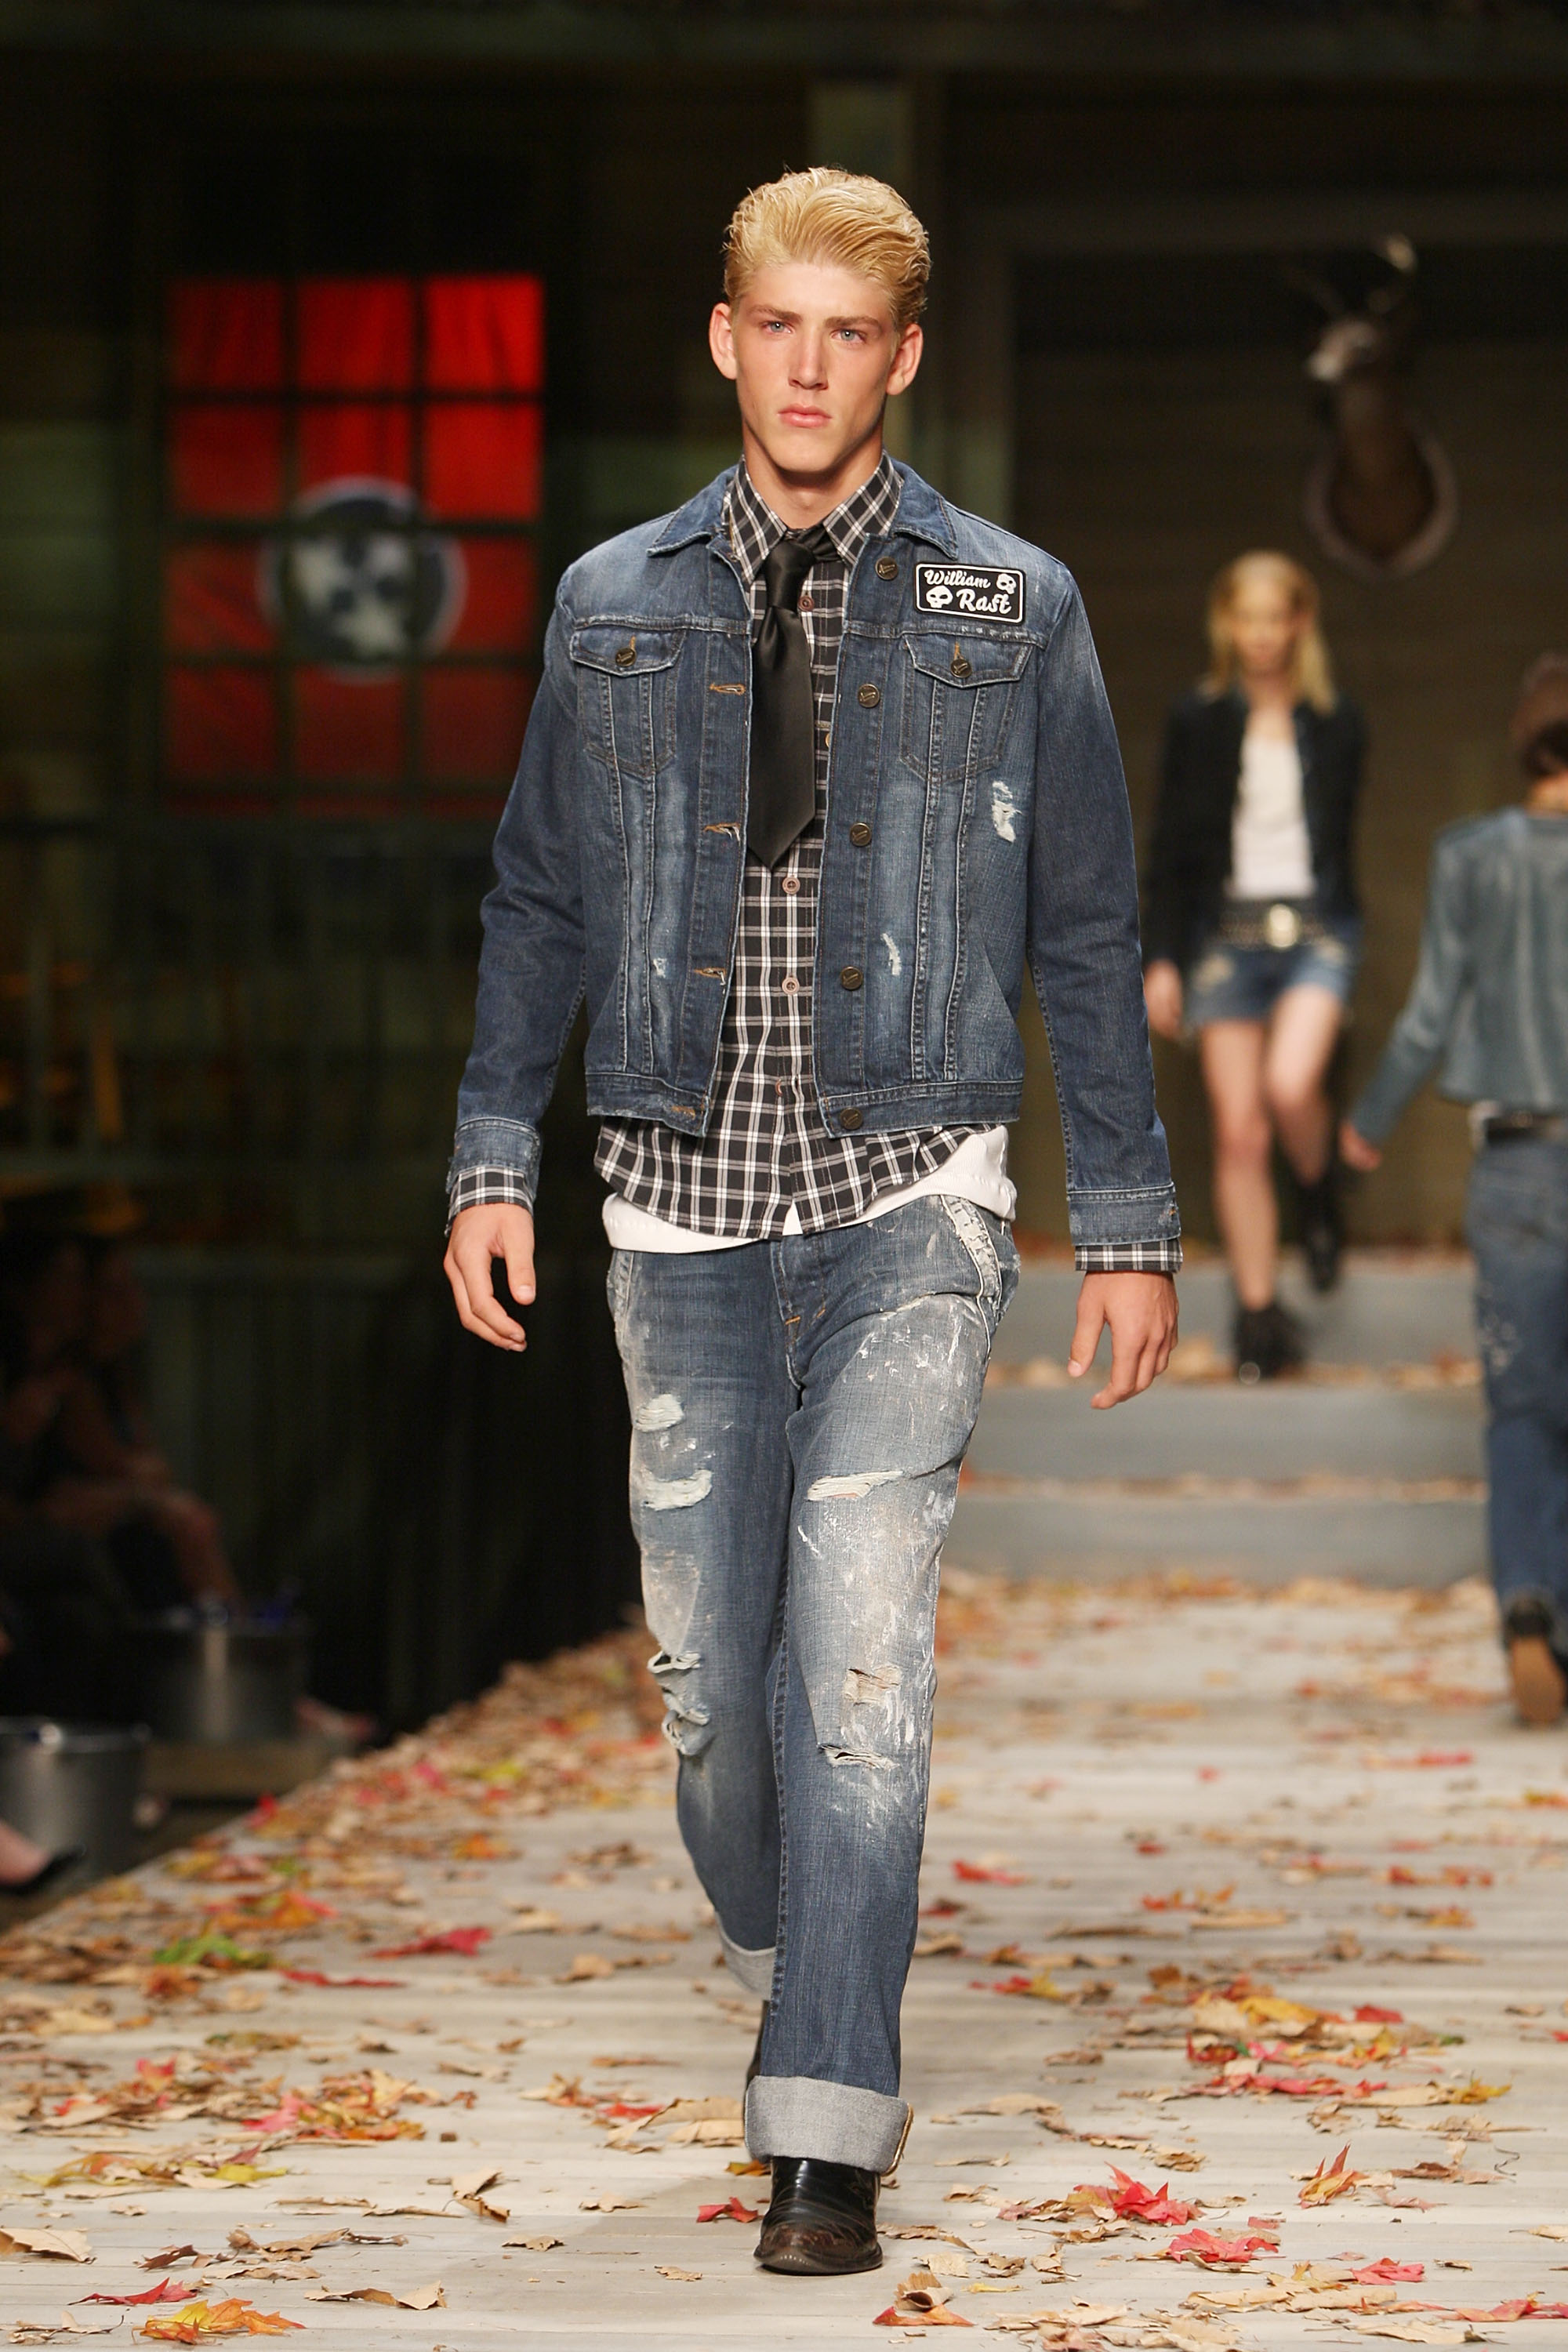 William Rast 2009 Runway Show